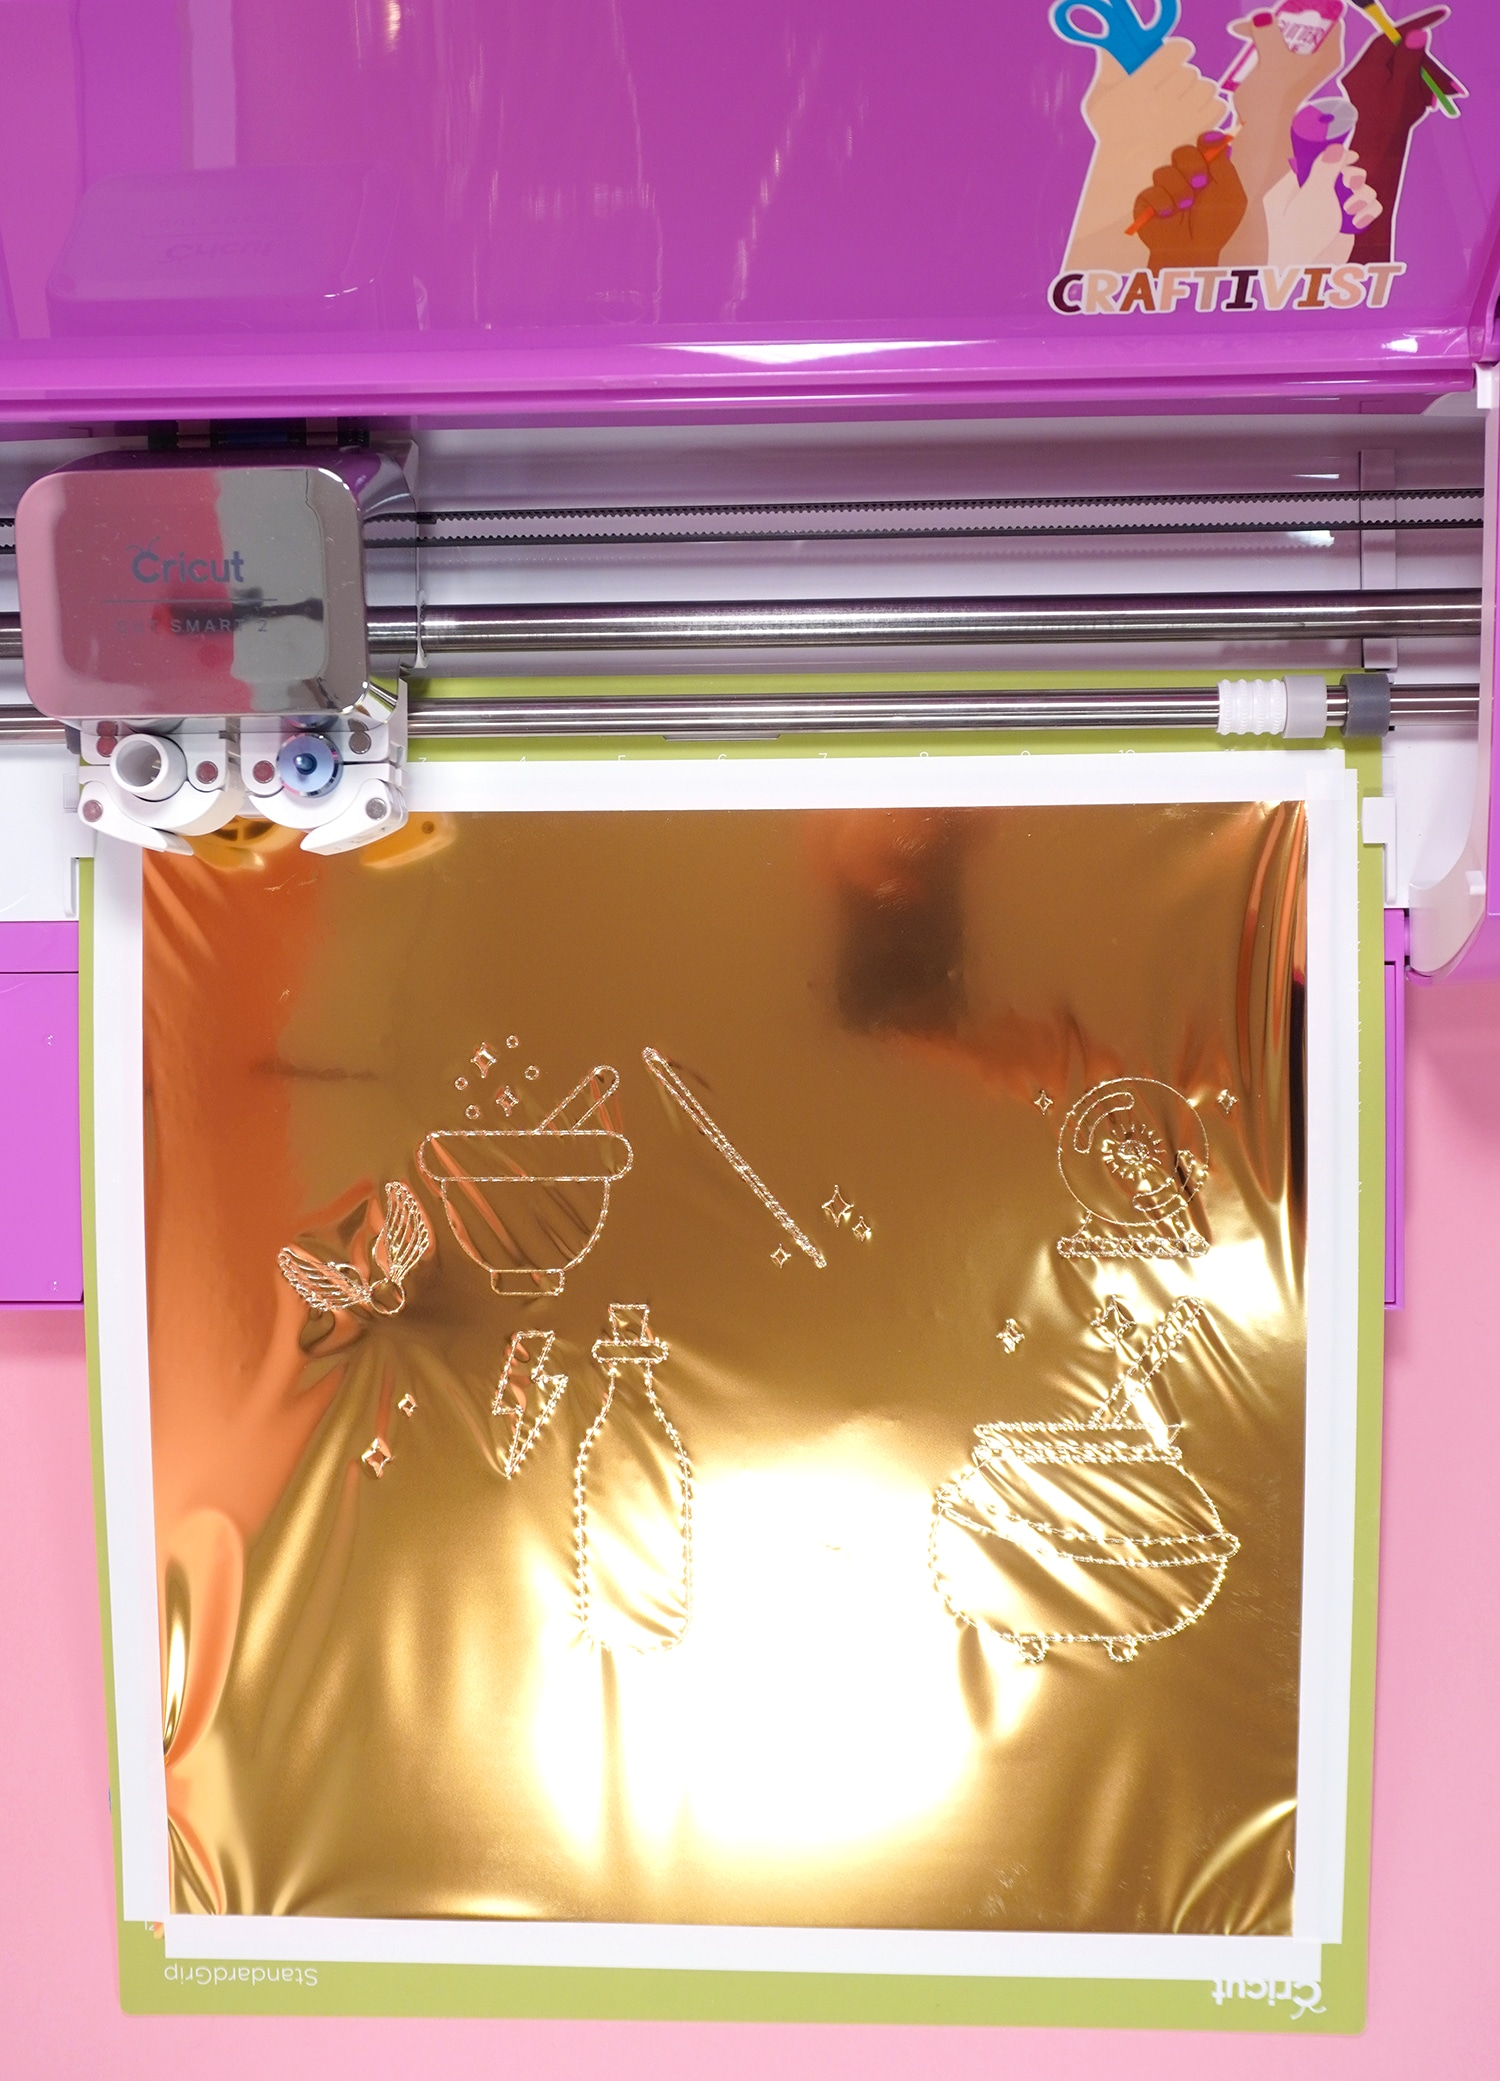 Gold foil with Harry Potter inspired designs on mat in pink Cricut Explore Air 2 machine